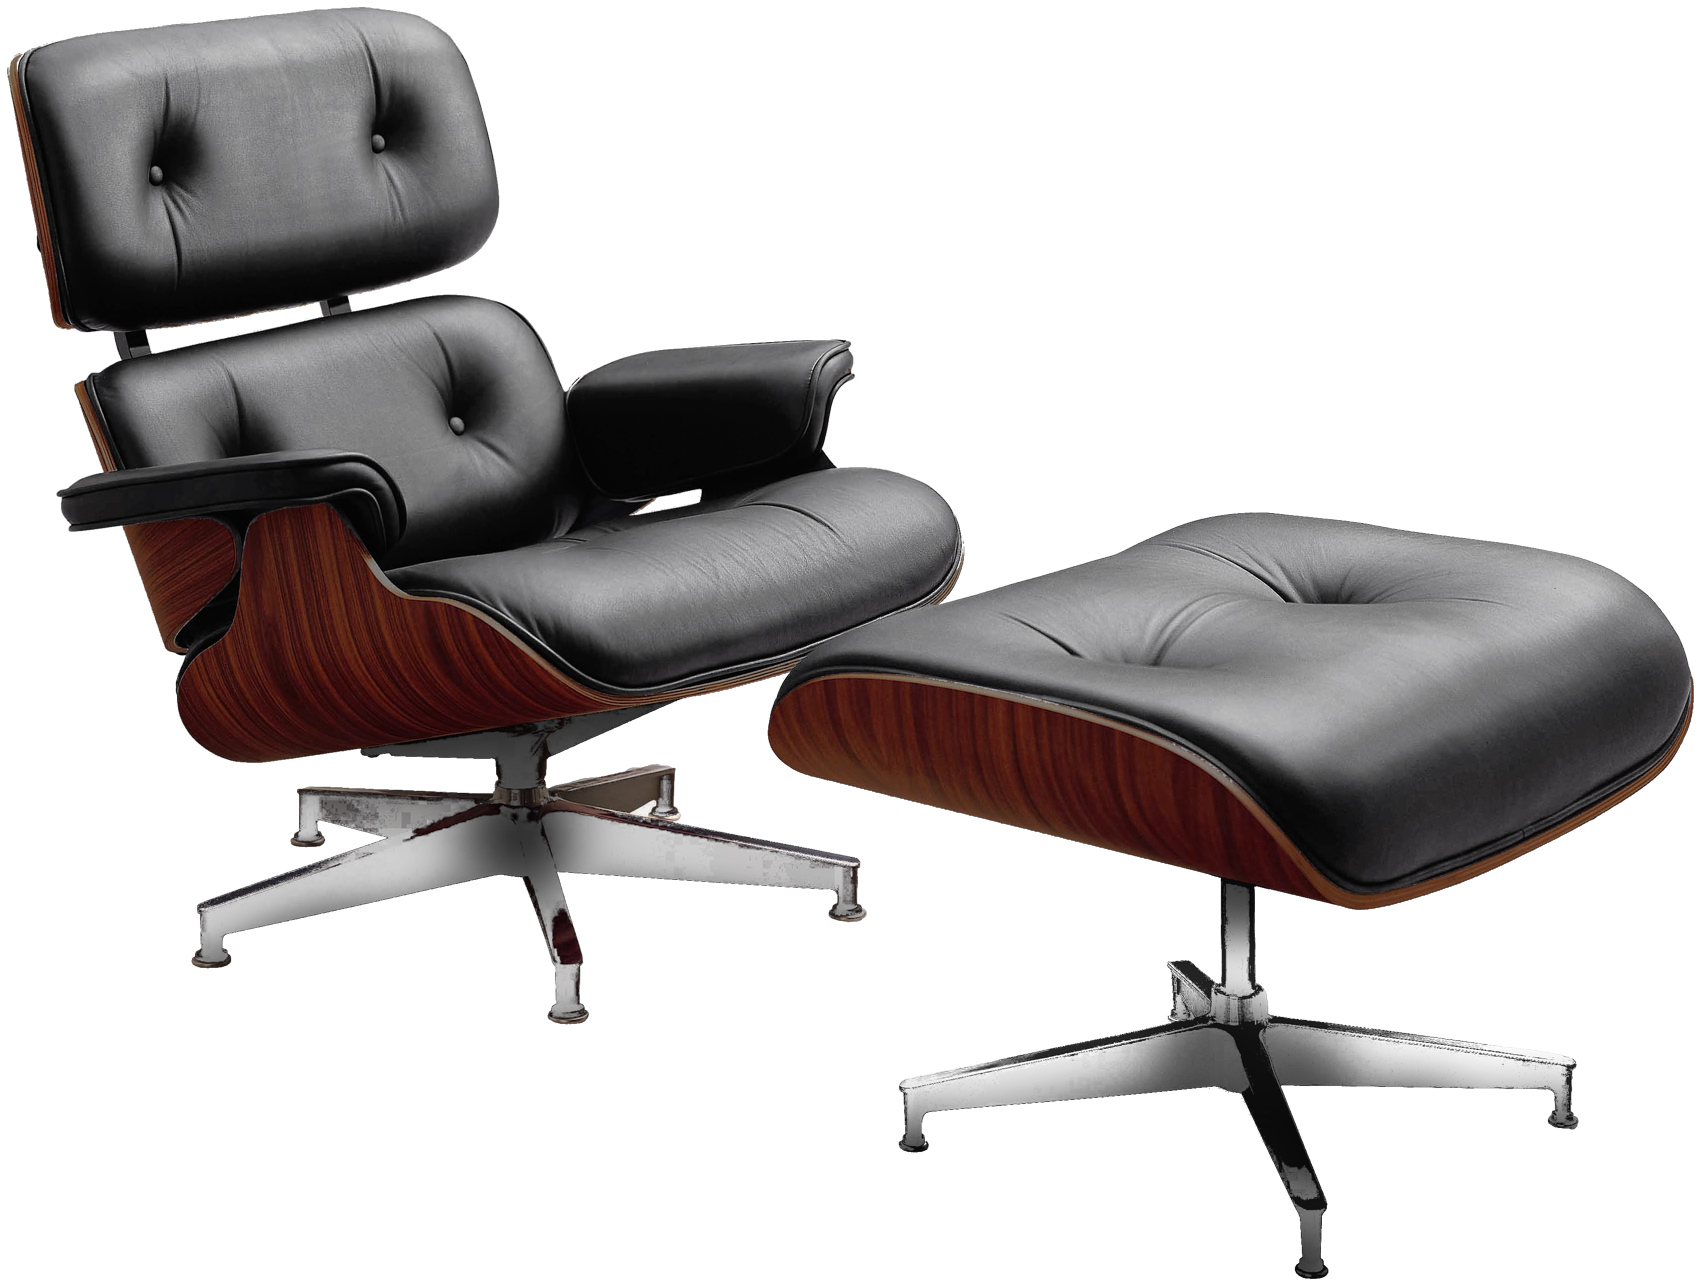 eames lounge chair 2017 2018 best cars reviews. Black Bedroom Furniture Sets. Home Design Ideas